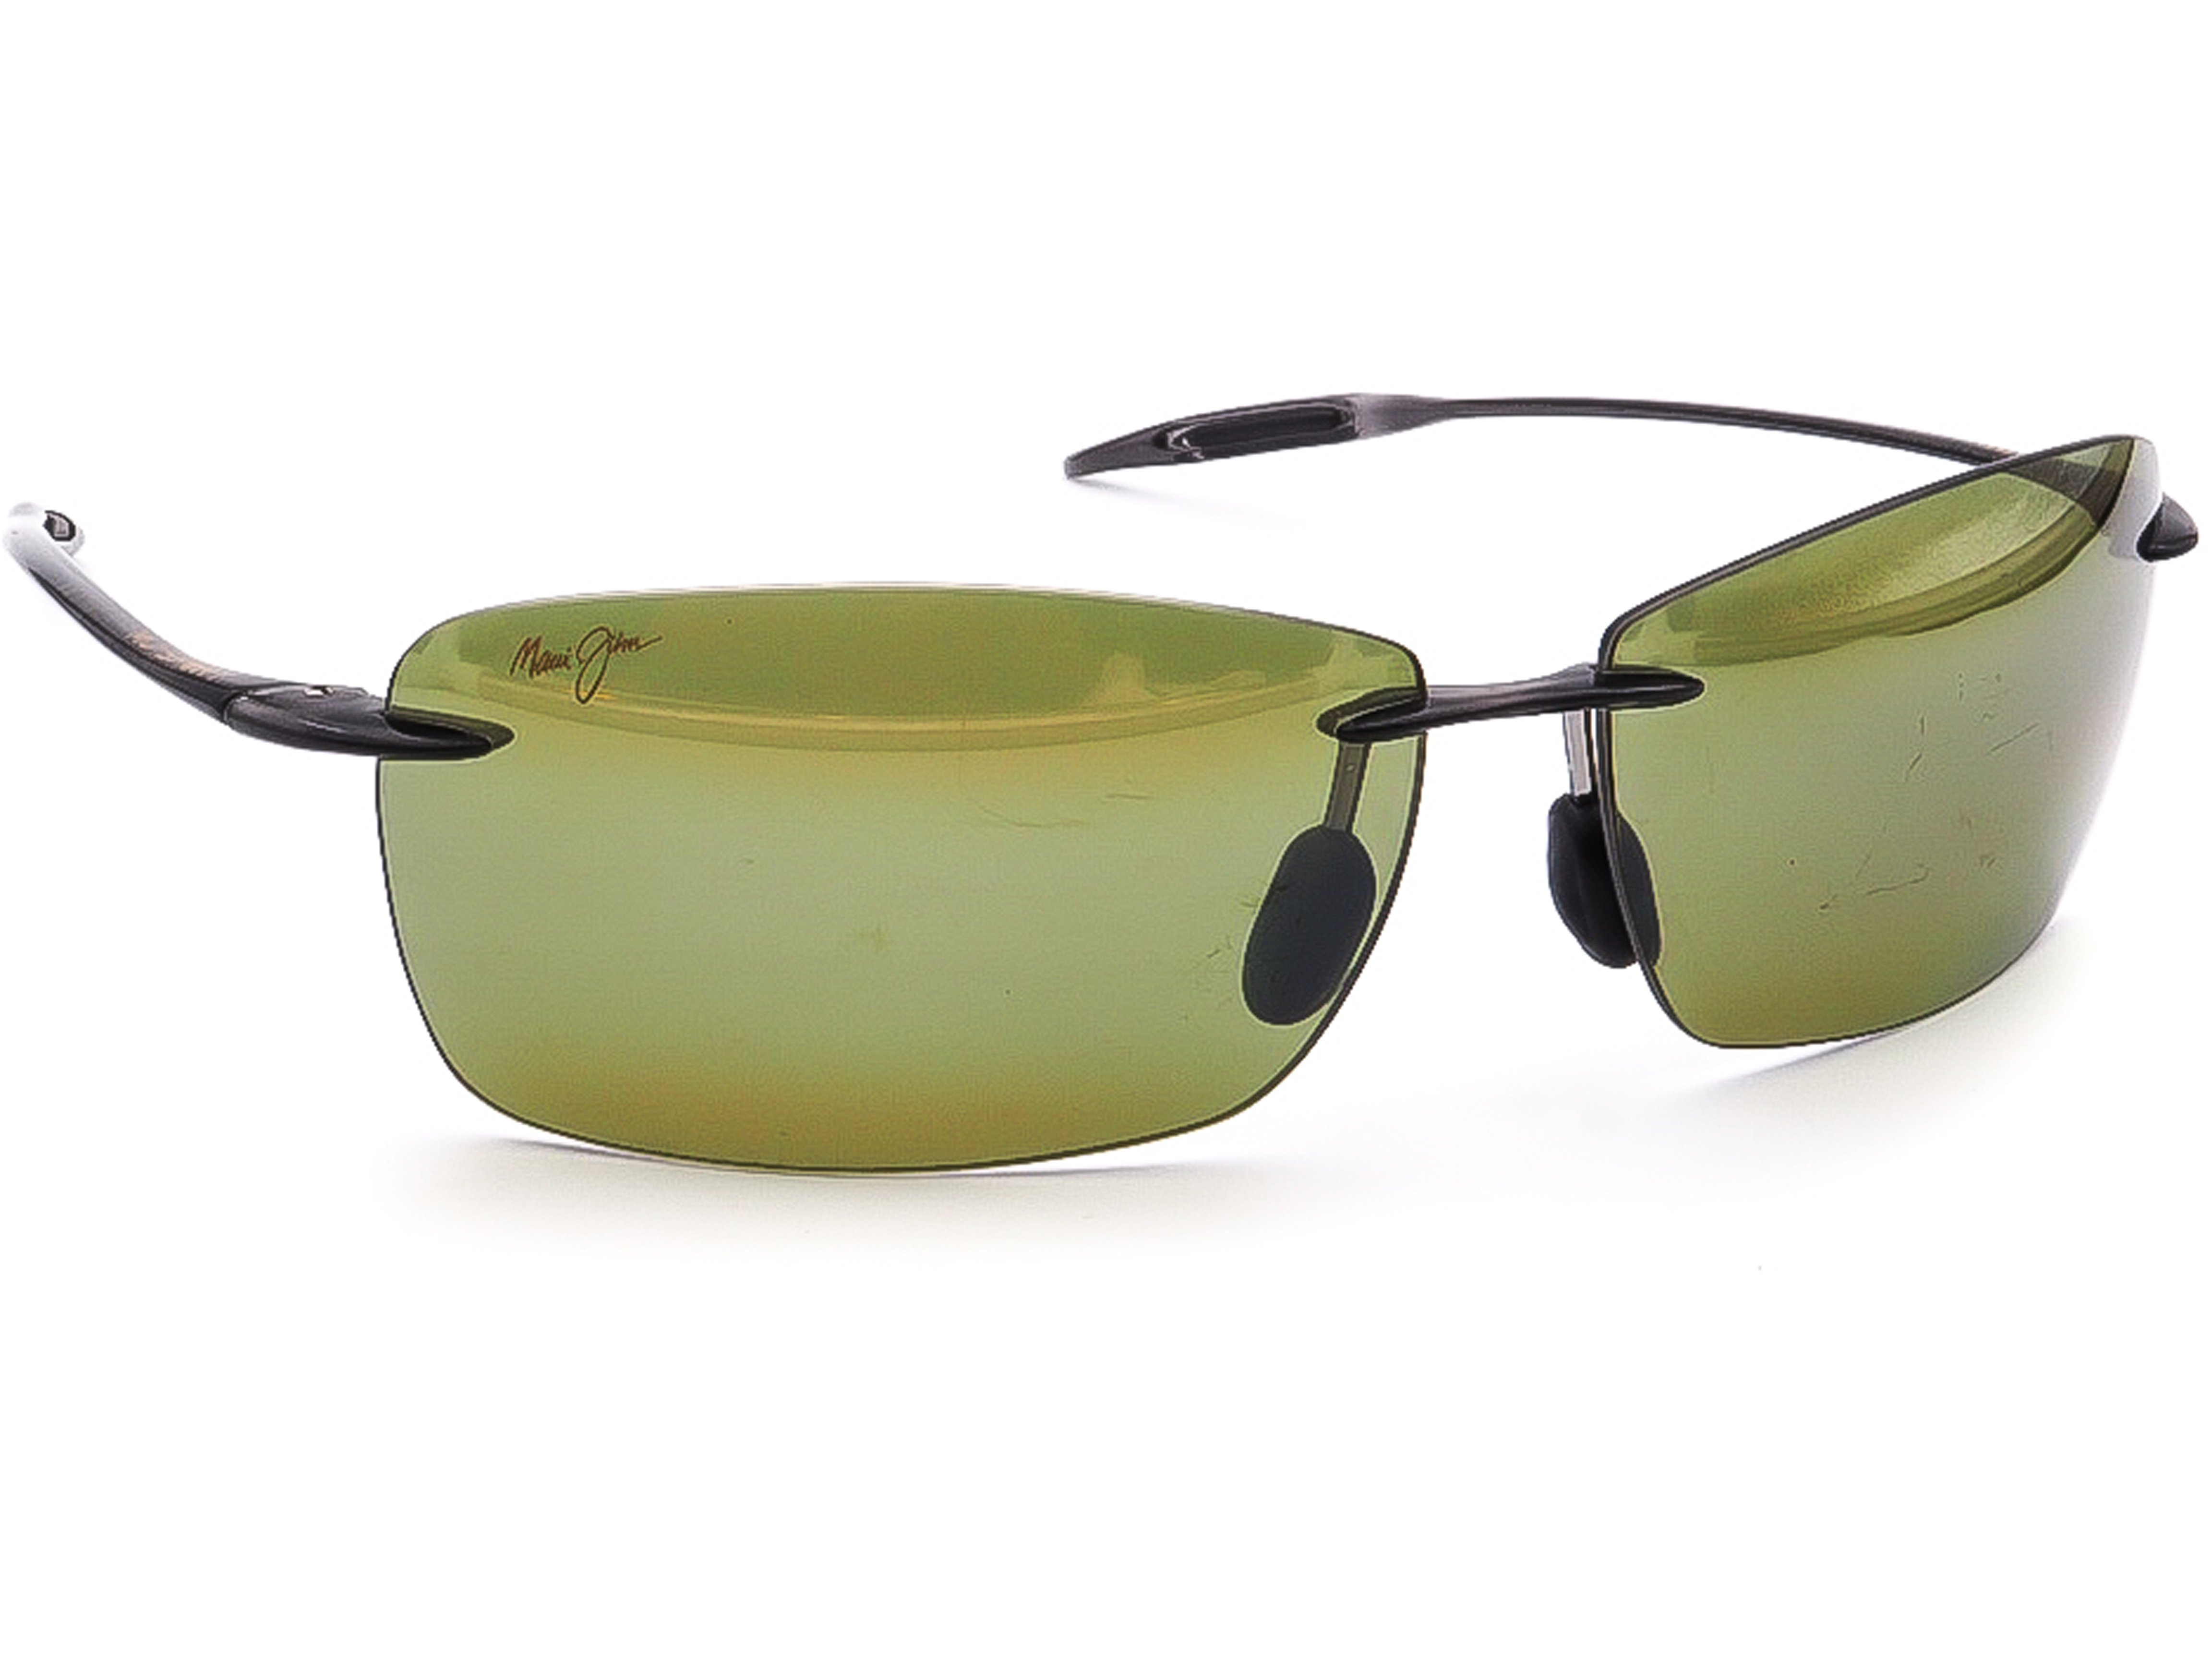 Maui Jim MJ-423-11 Lighthouse PC-BG Sunglasses Frame Only